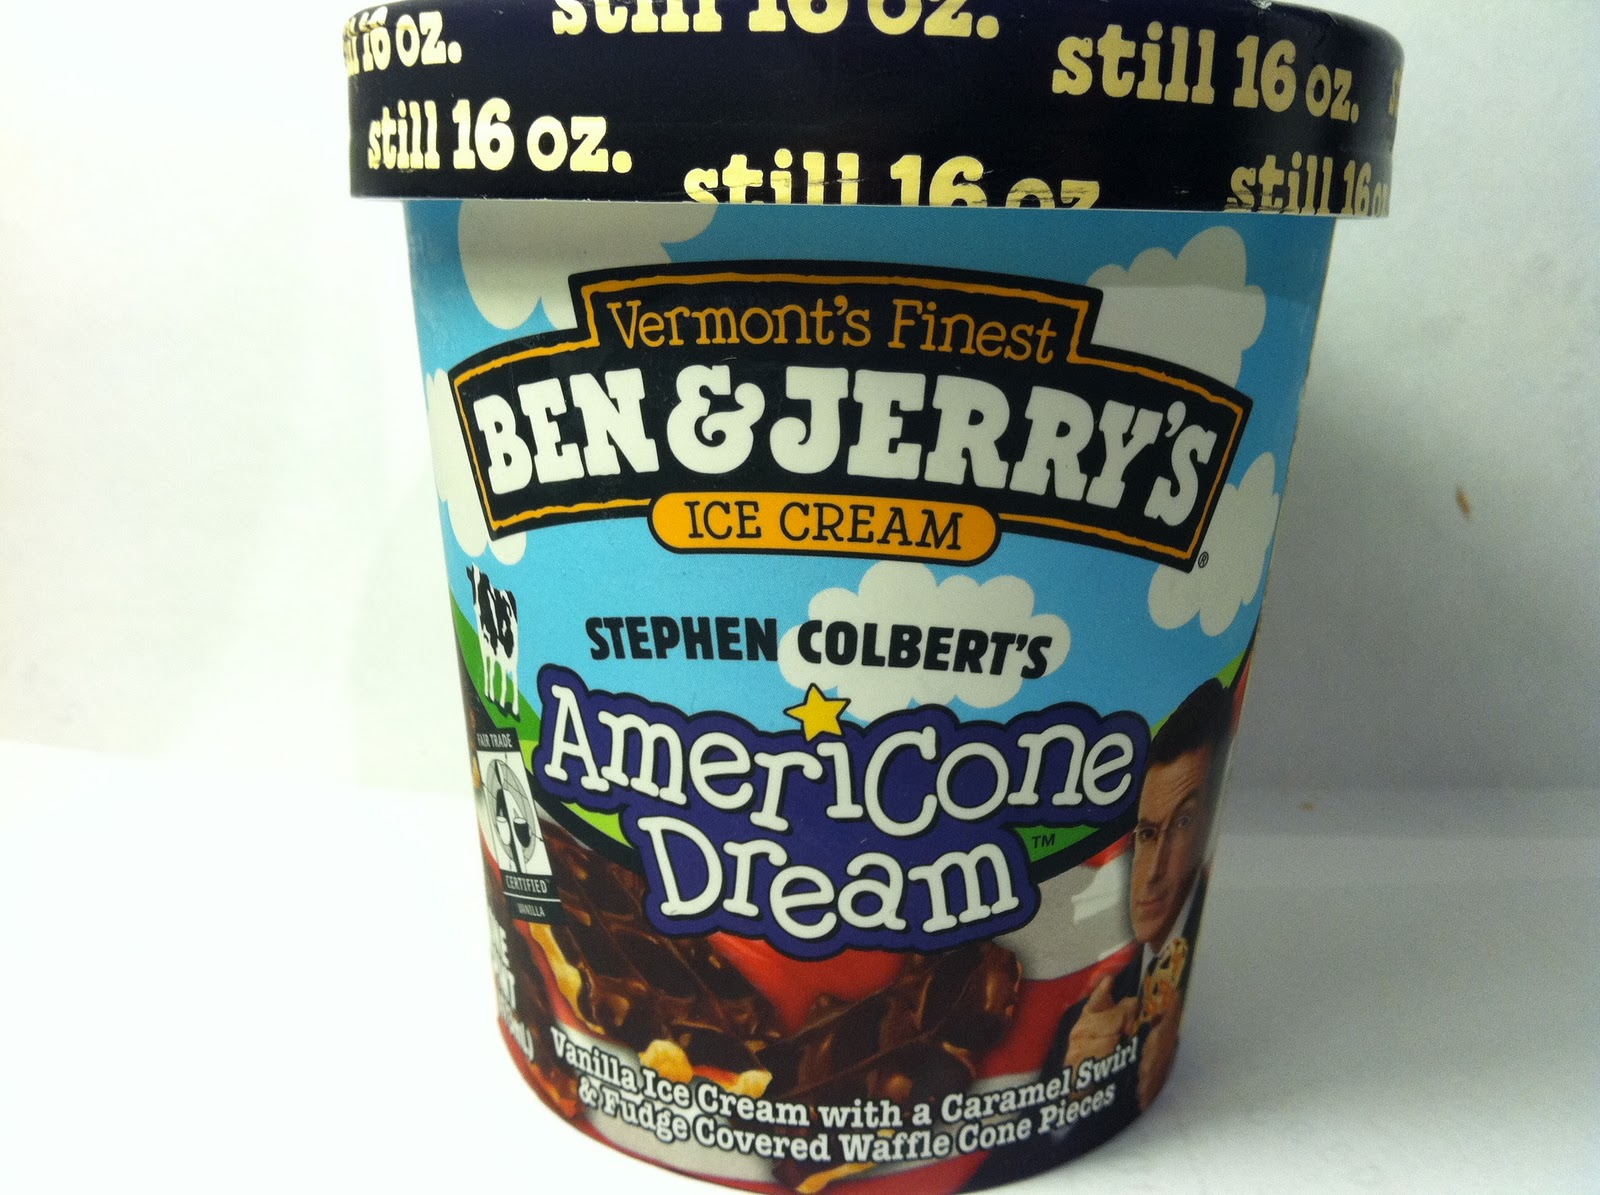 Crazy Food Dude Review Ben Jerry S Stephen Colbert S Americone Dream Ice Cream Stephen colbert's ben & jerry's ice cream flavor! americone dream ice cream